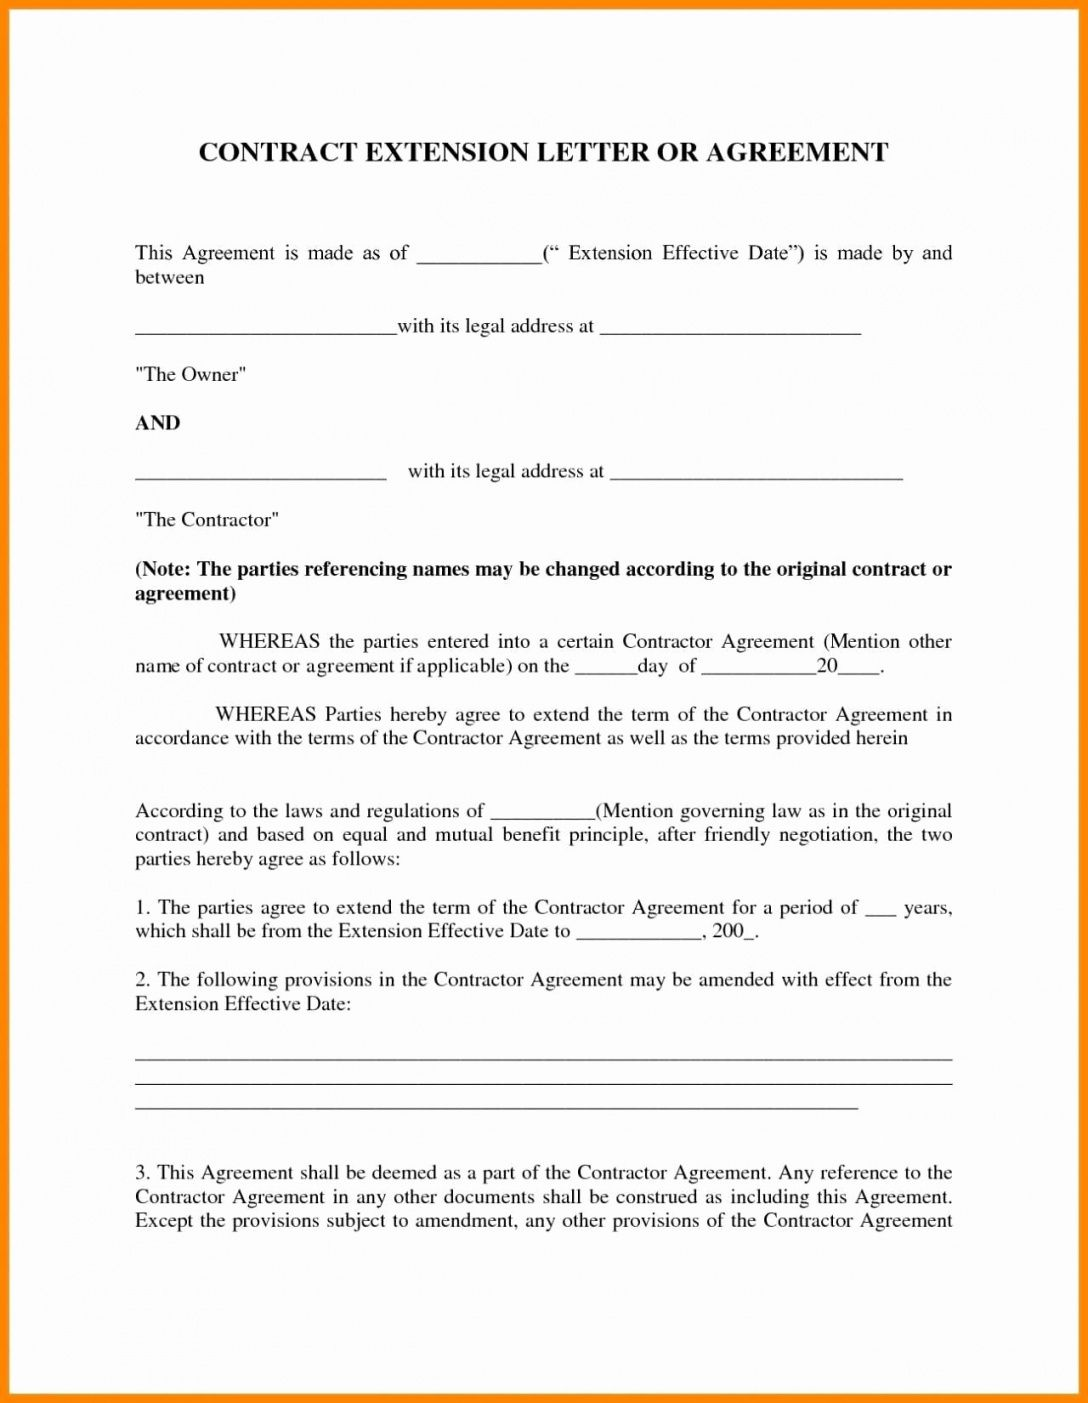 Travel Service Agreement Template In 2020 With Images Contract